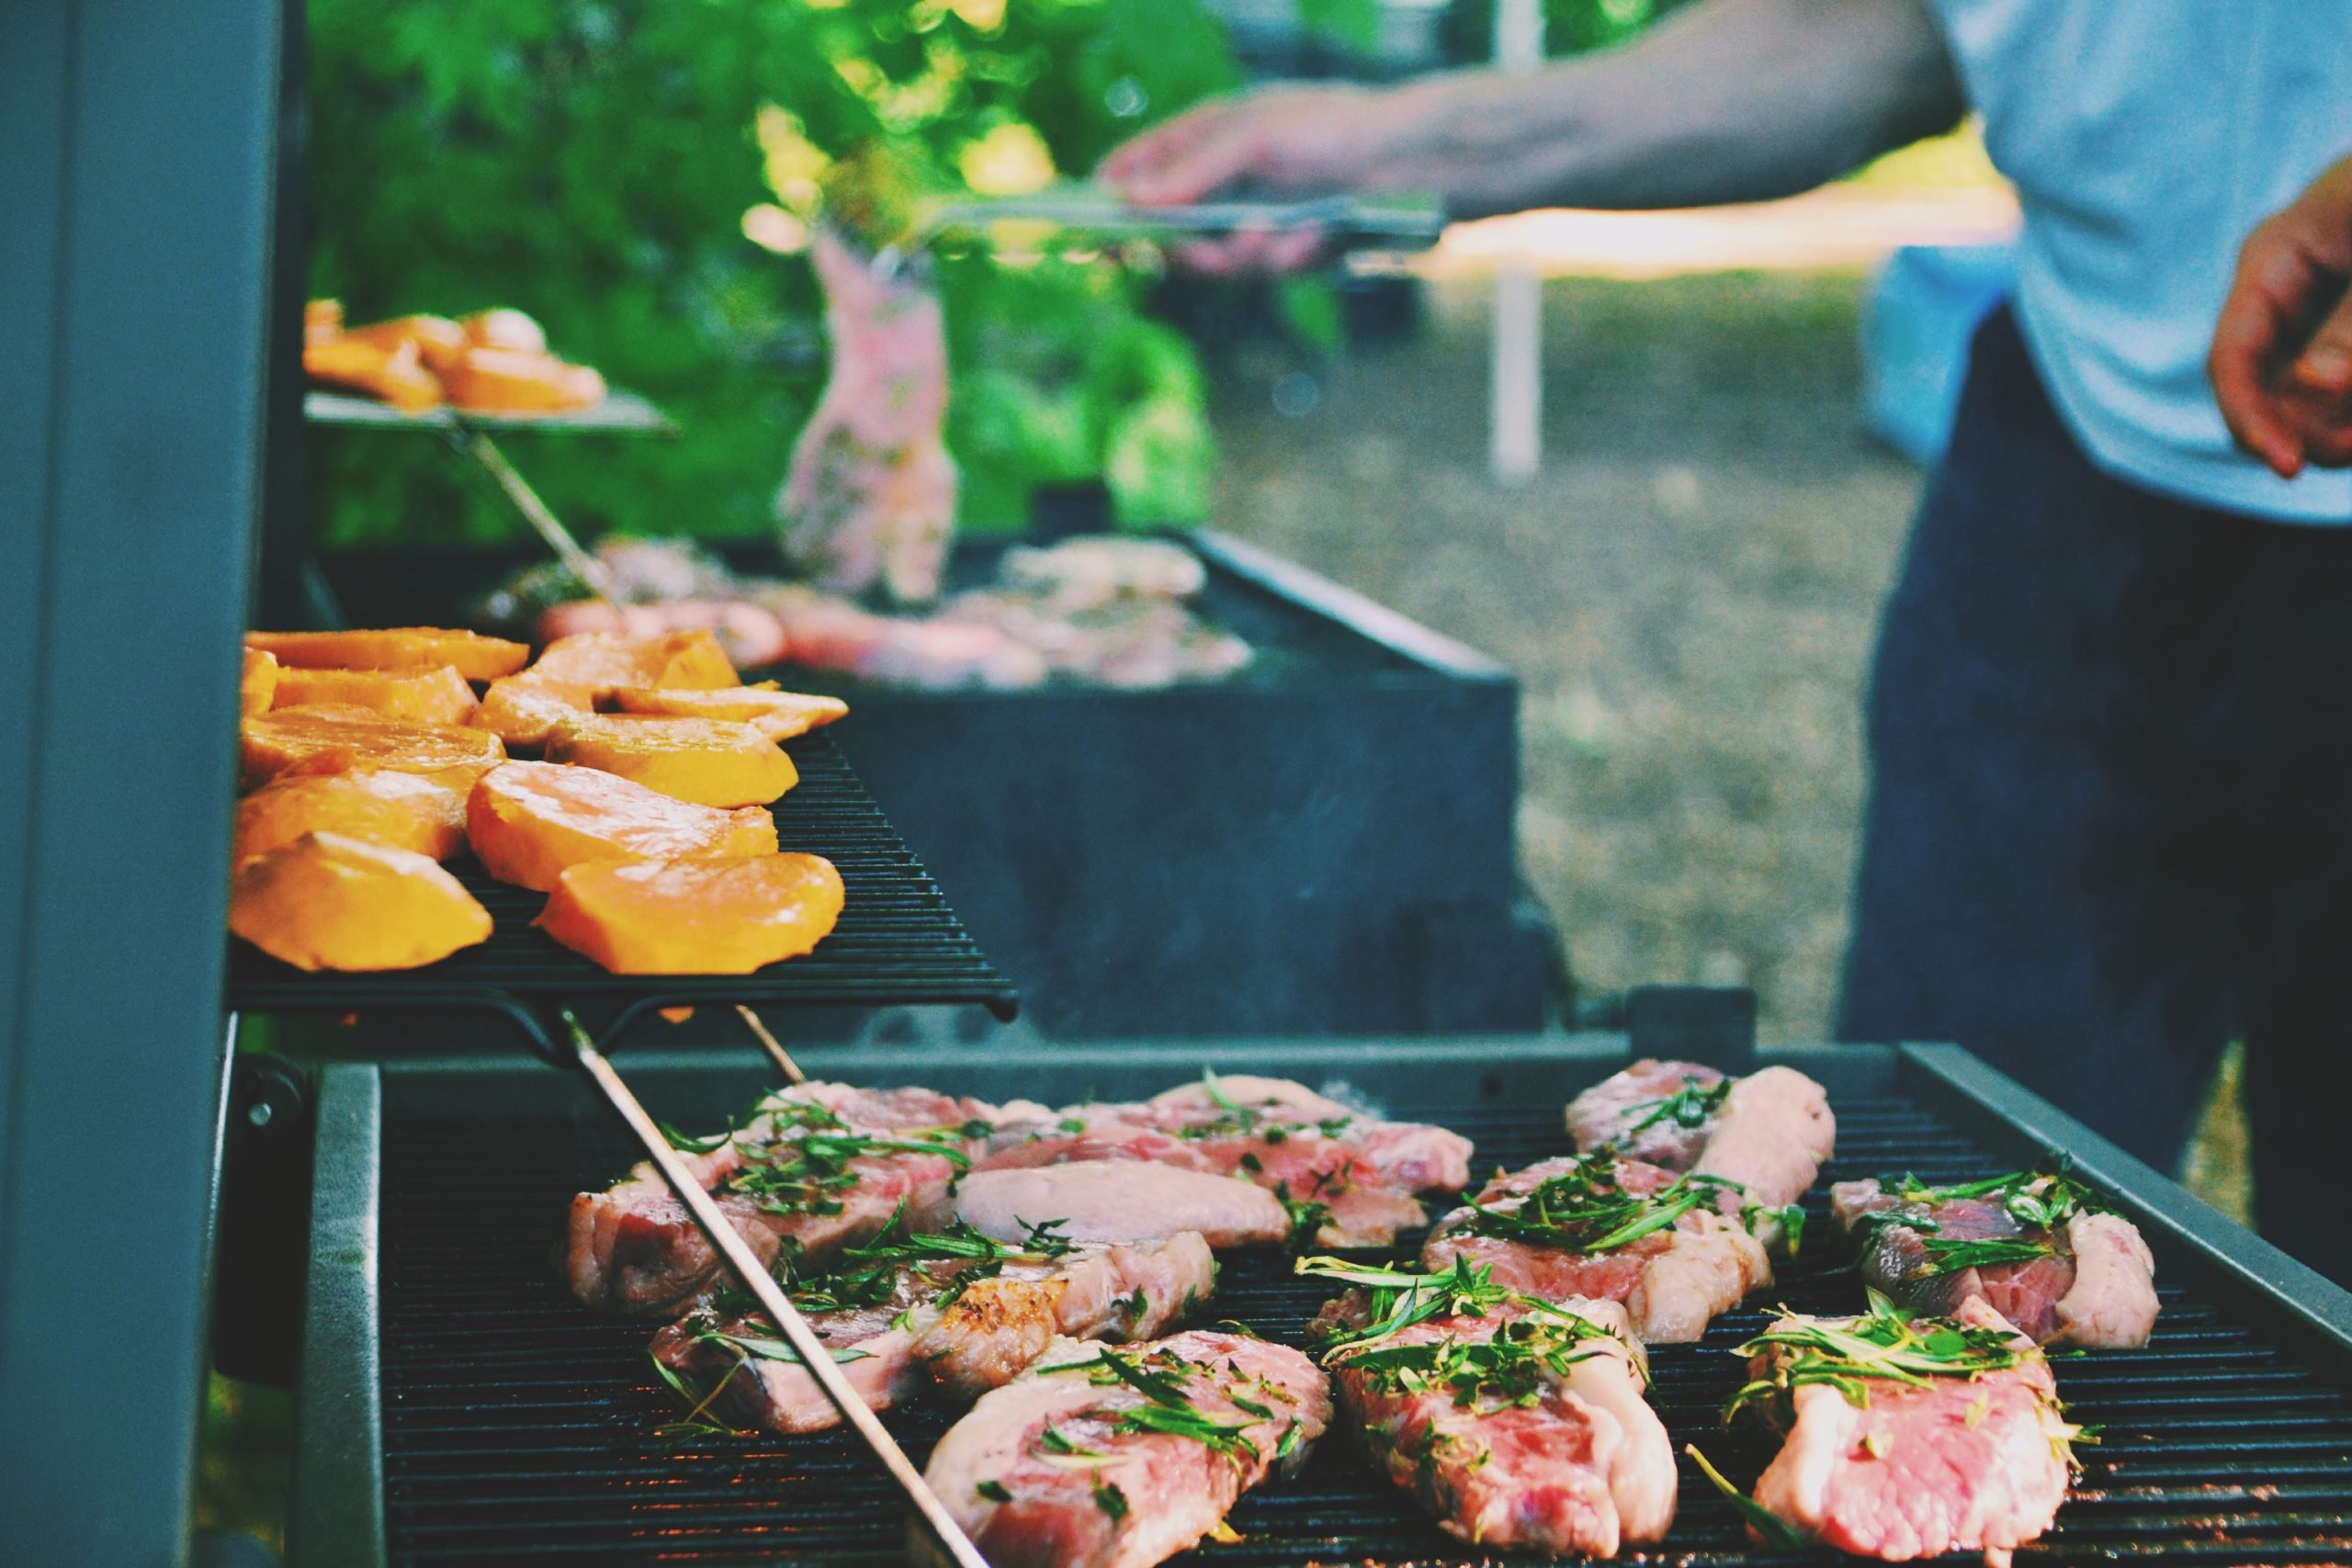 Marinated meat cooking on a gas barbecue grill